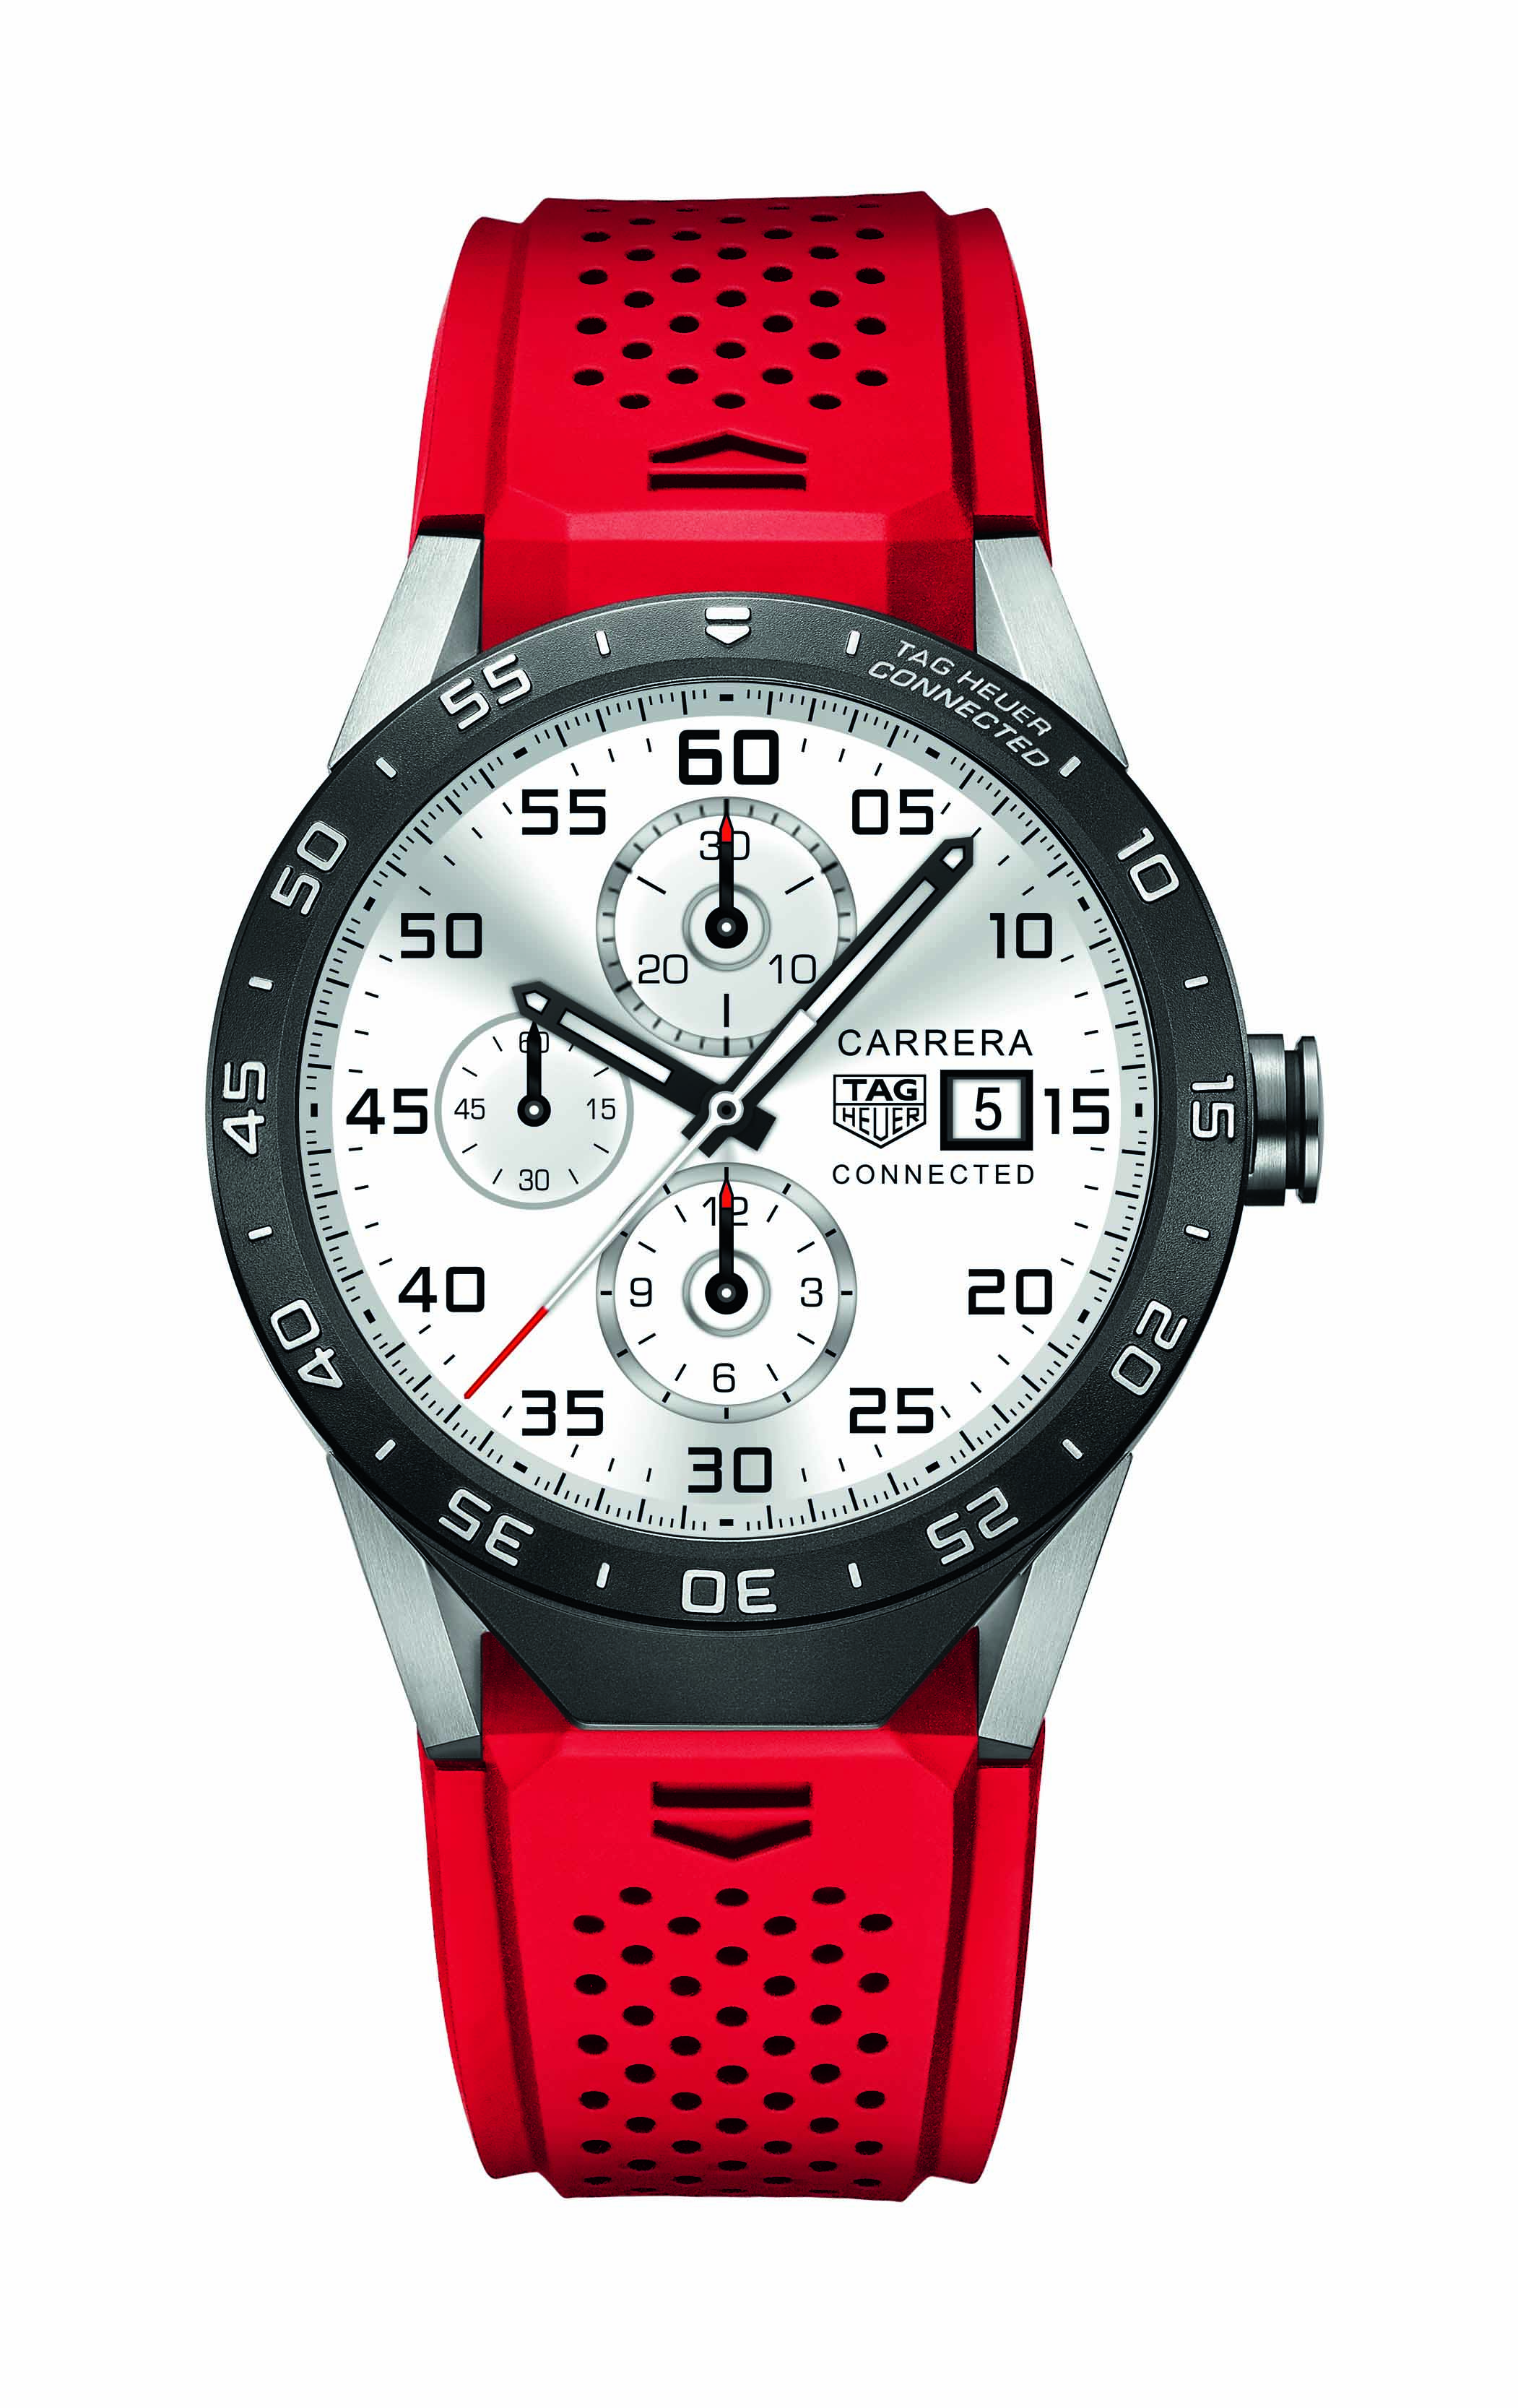 SAR8A80.FT6057 - RED - DIAL ON 2015